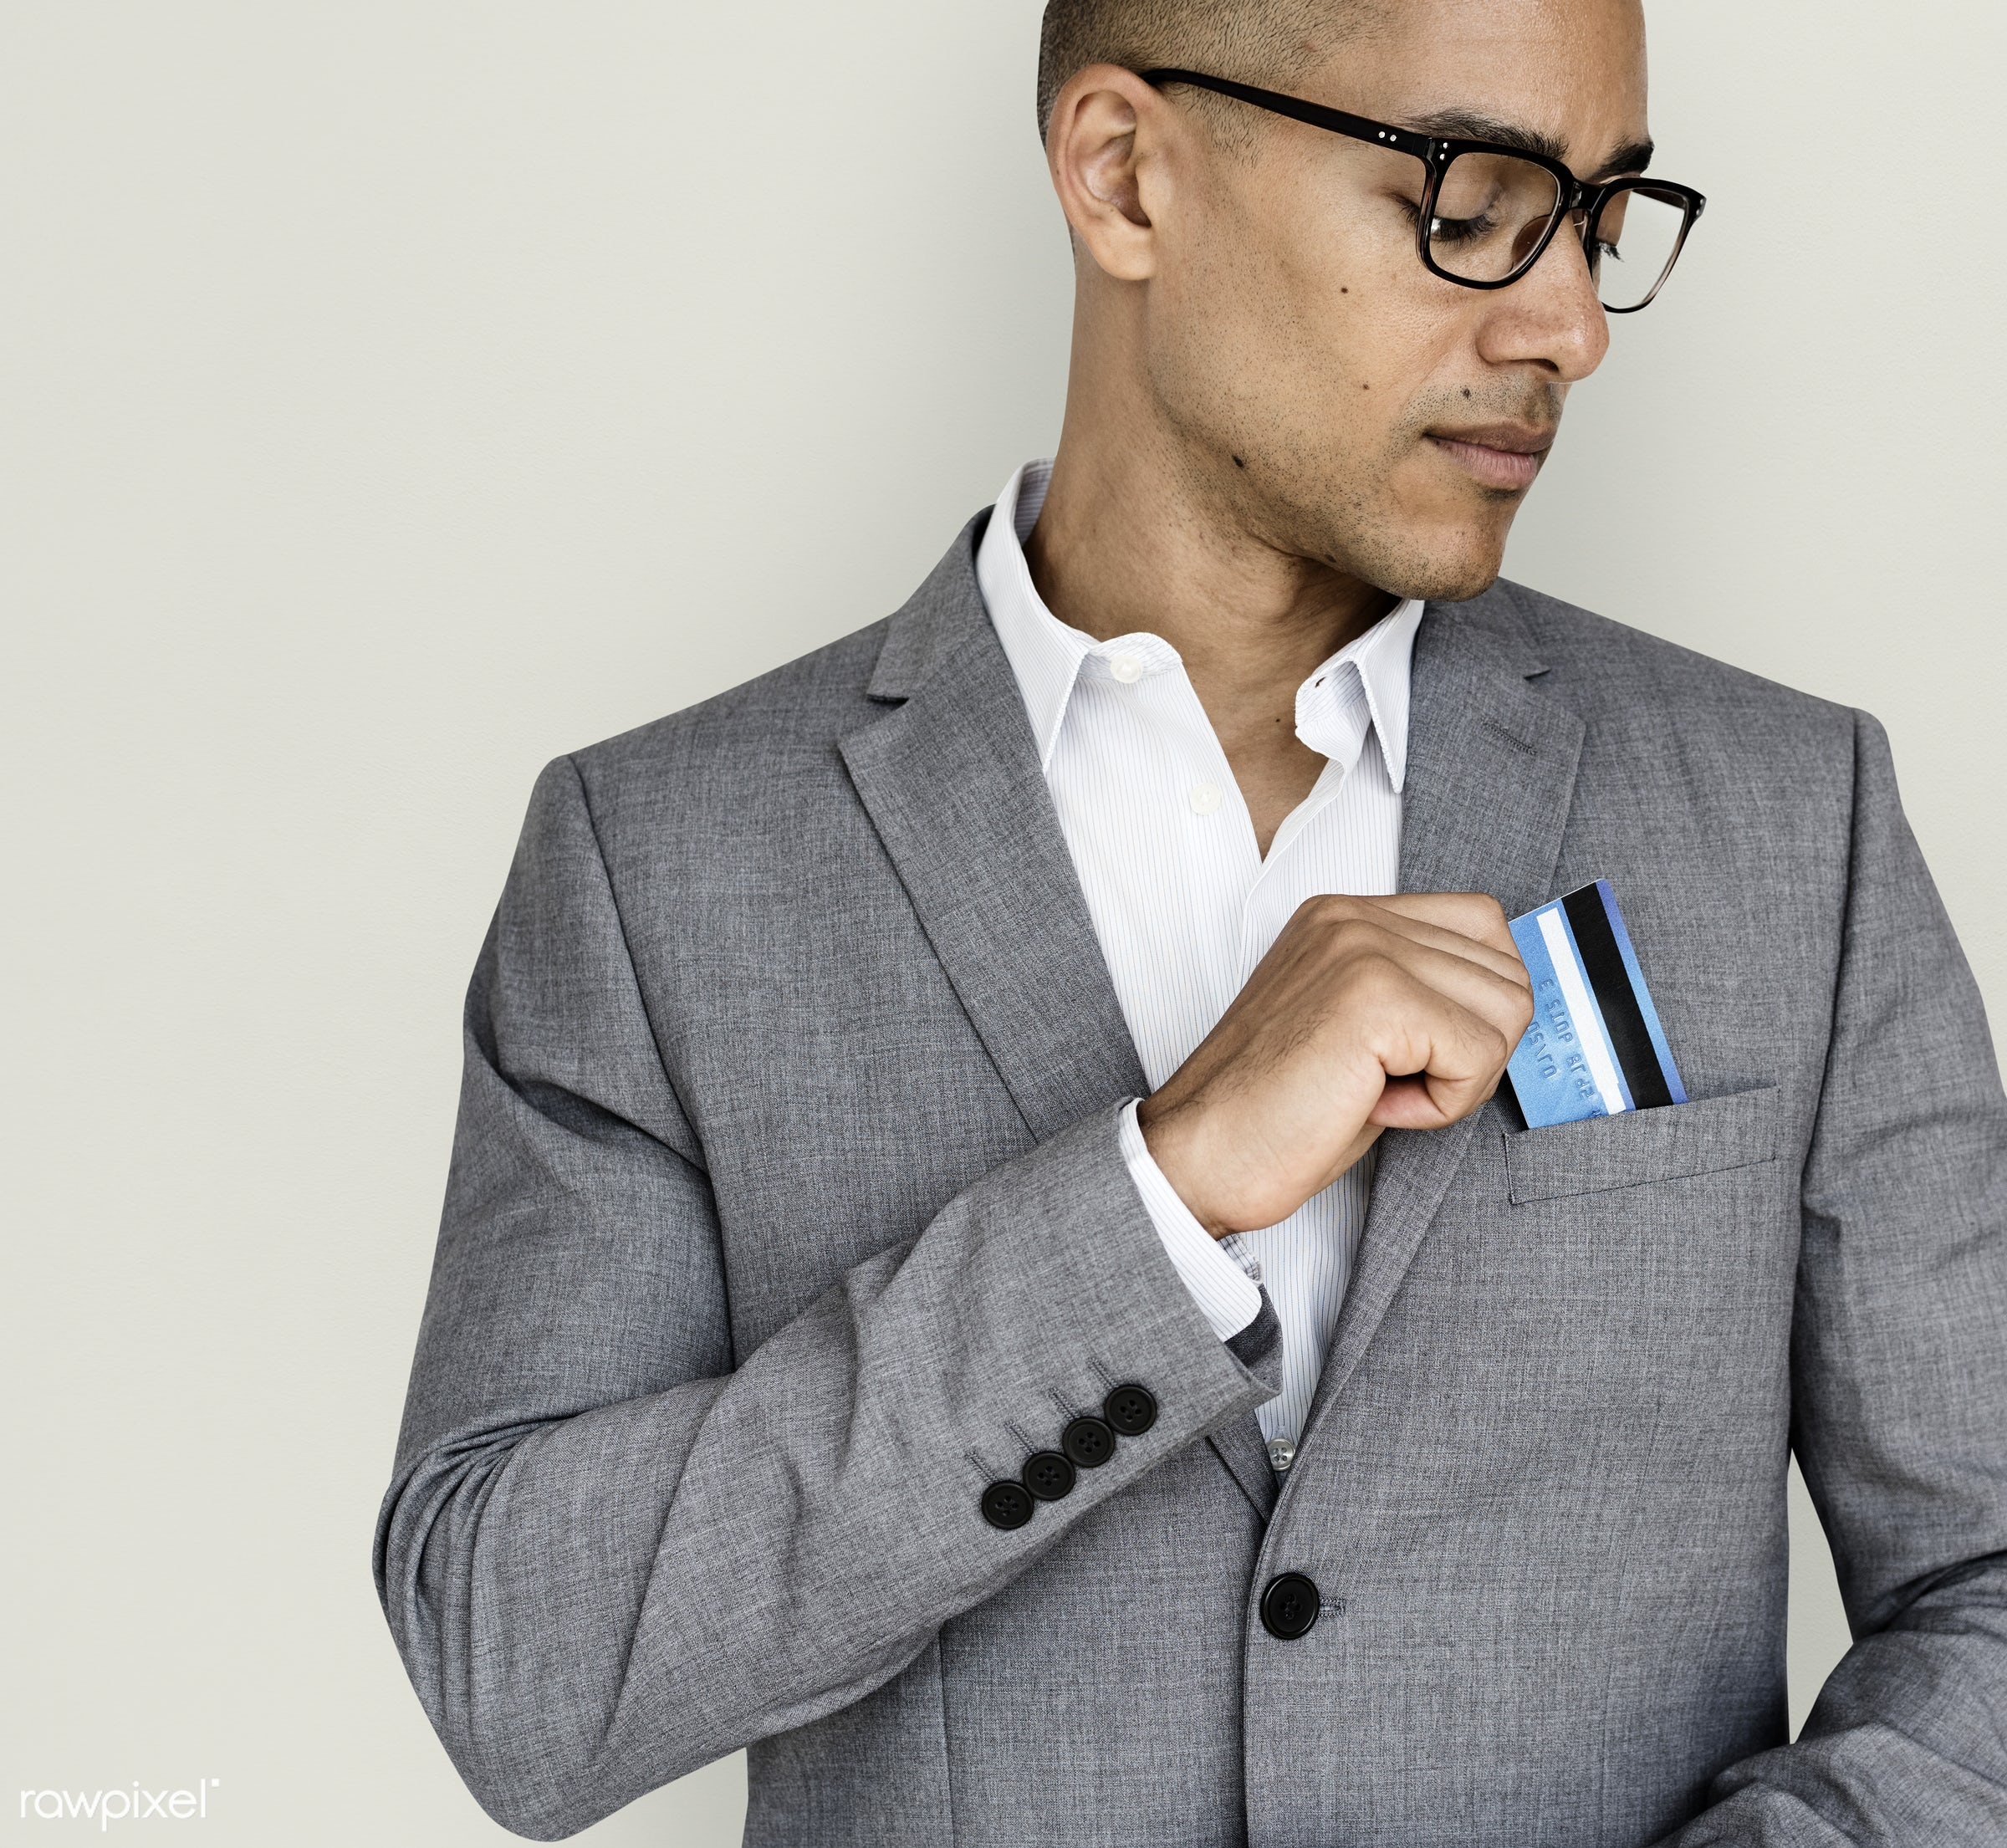 expression, studio, person, business wear, people, formal dressing, business, card, credit, man, black, neutral mood, formal...